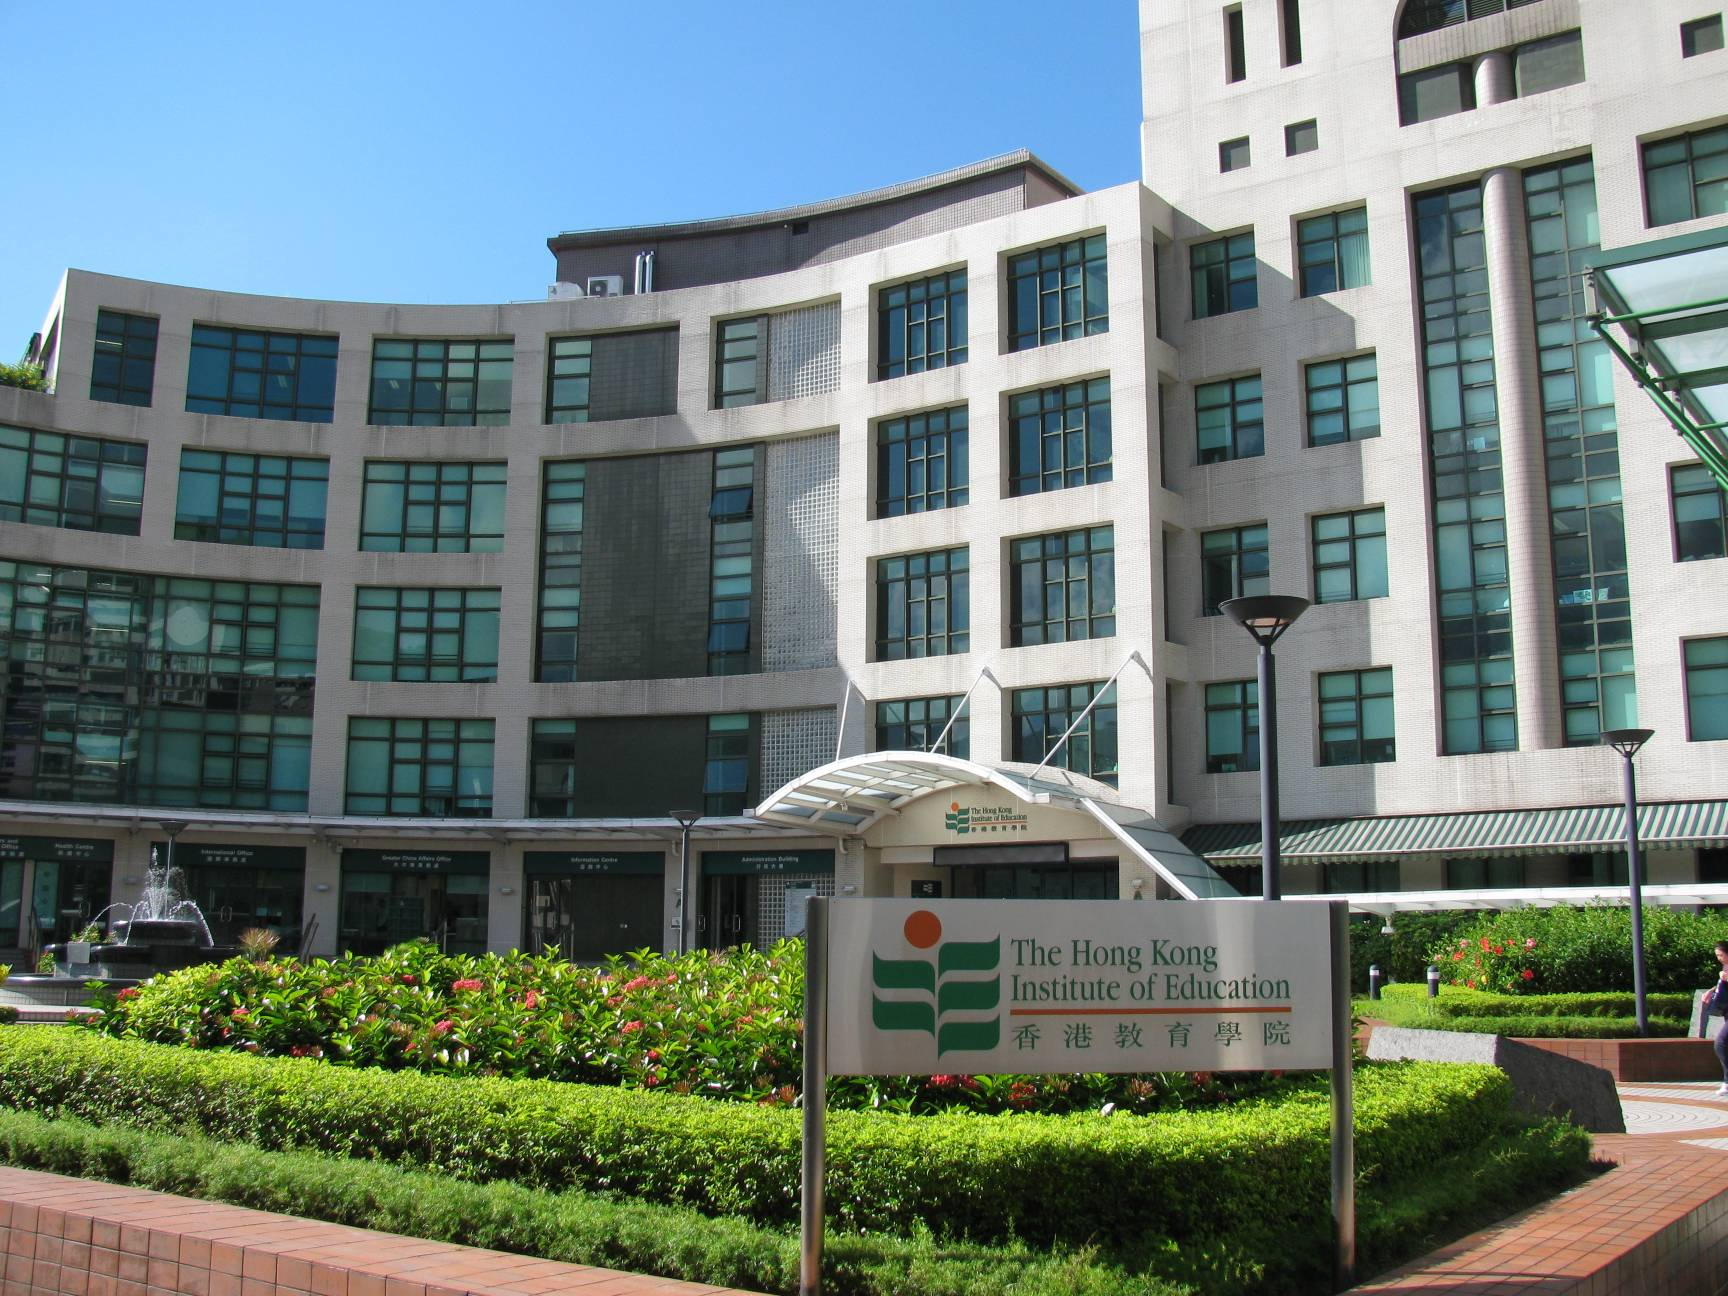 The Hong Kong Institute of Education 香港教育學院